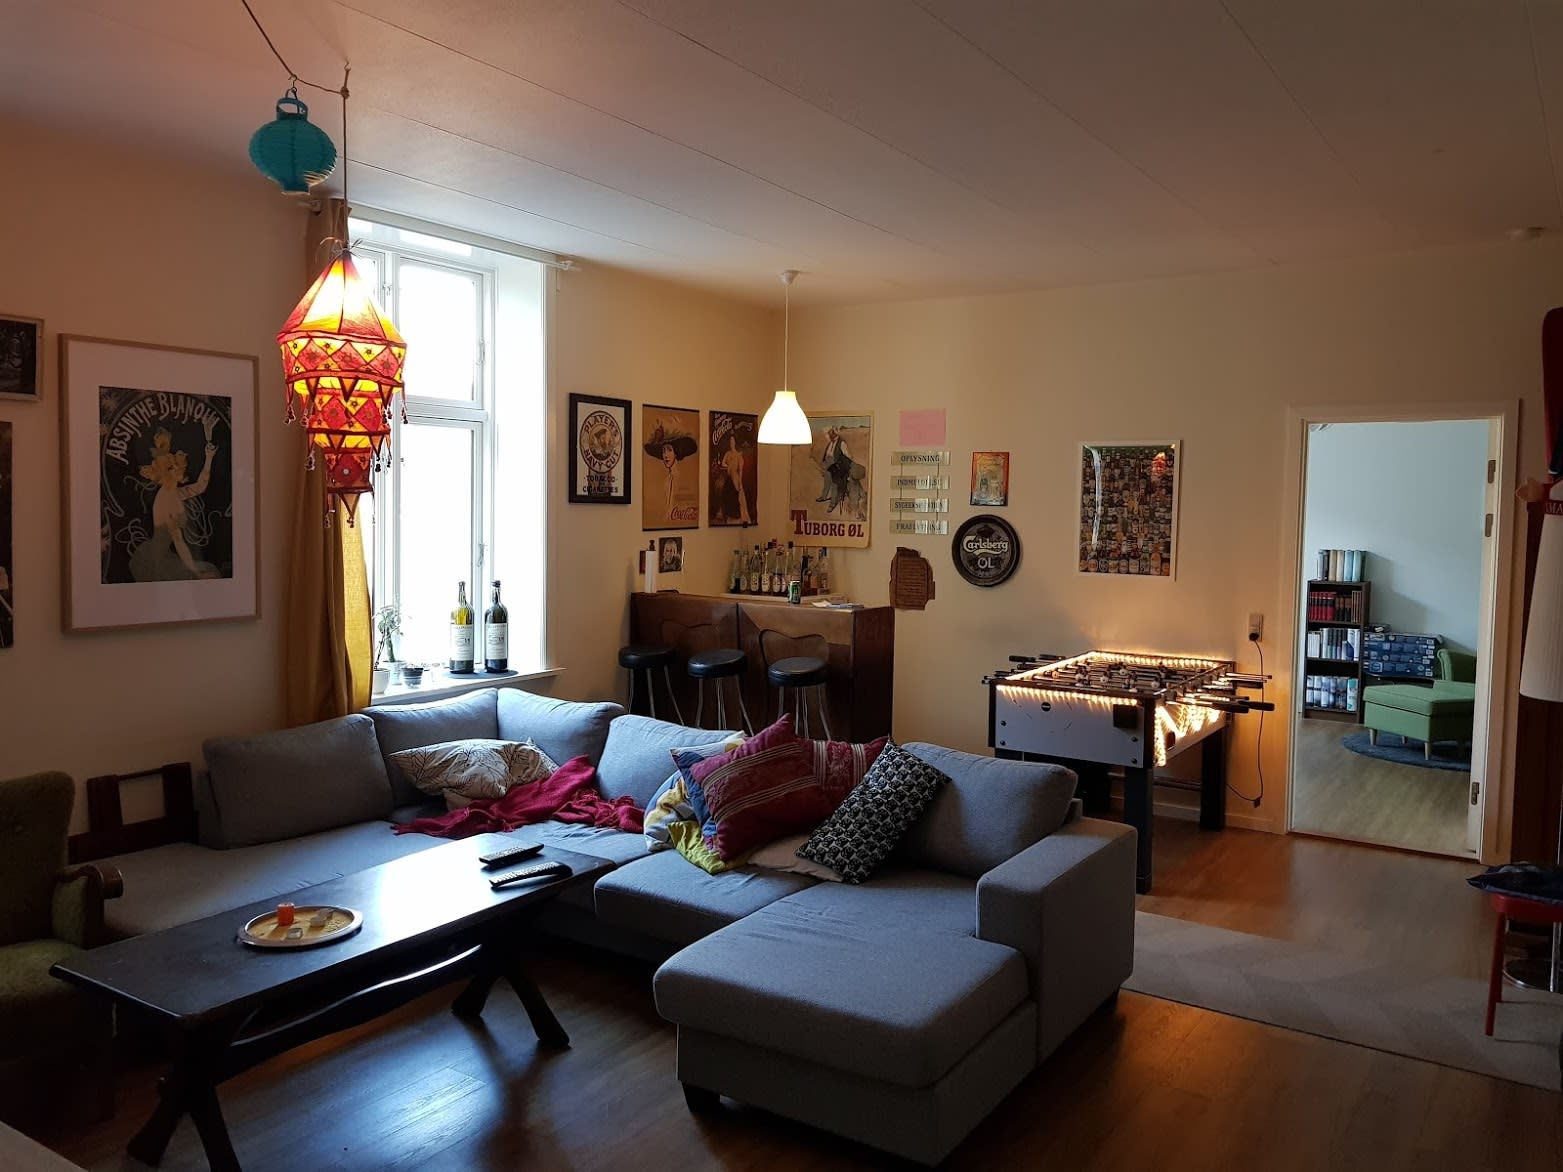 2 rooms available in the center of Aalborg